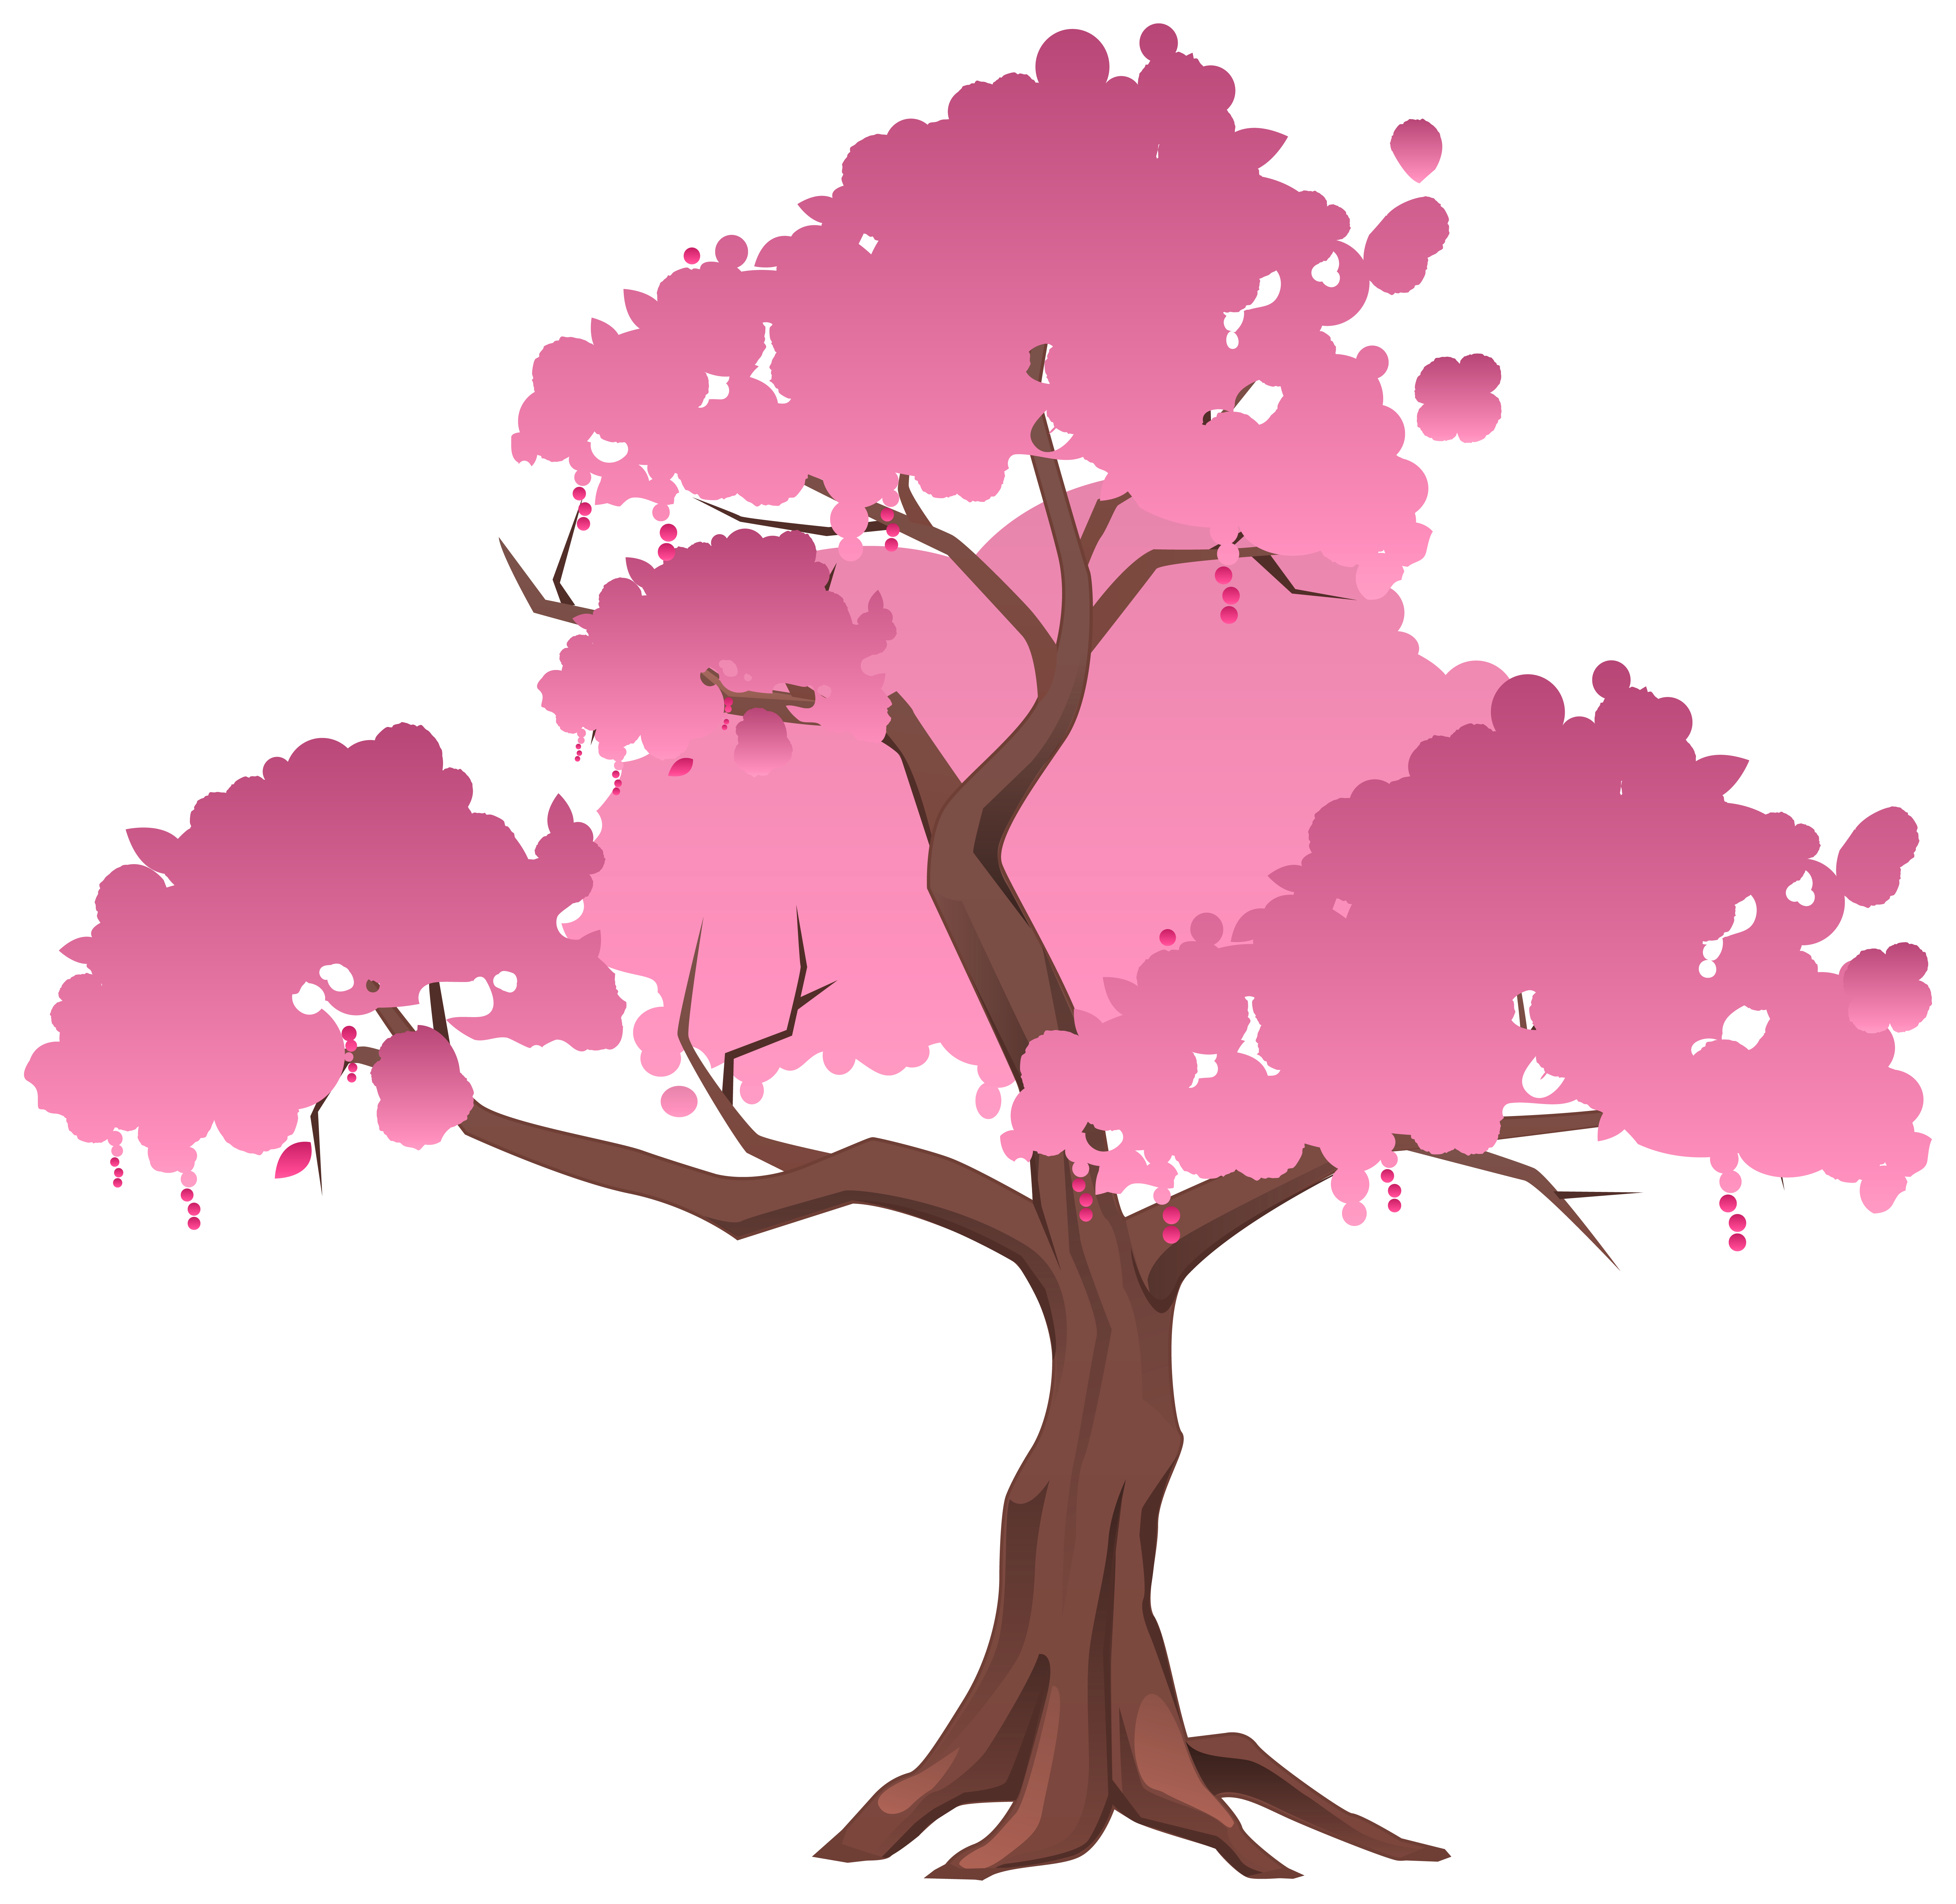 Clipart trees romantic. Pink japanese tree png